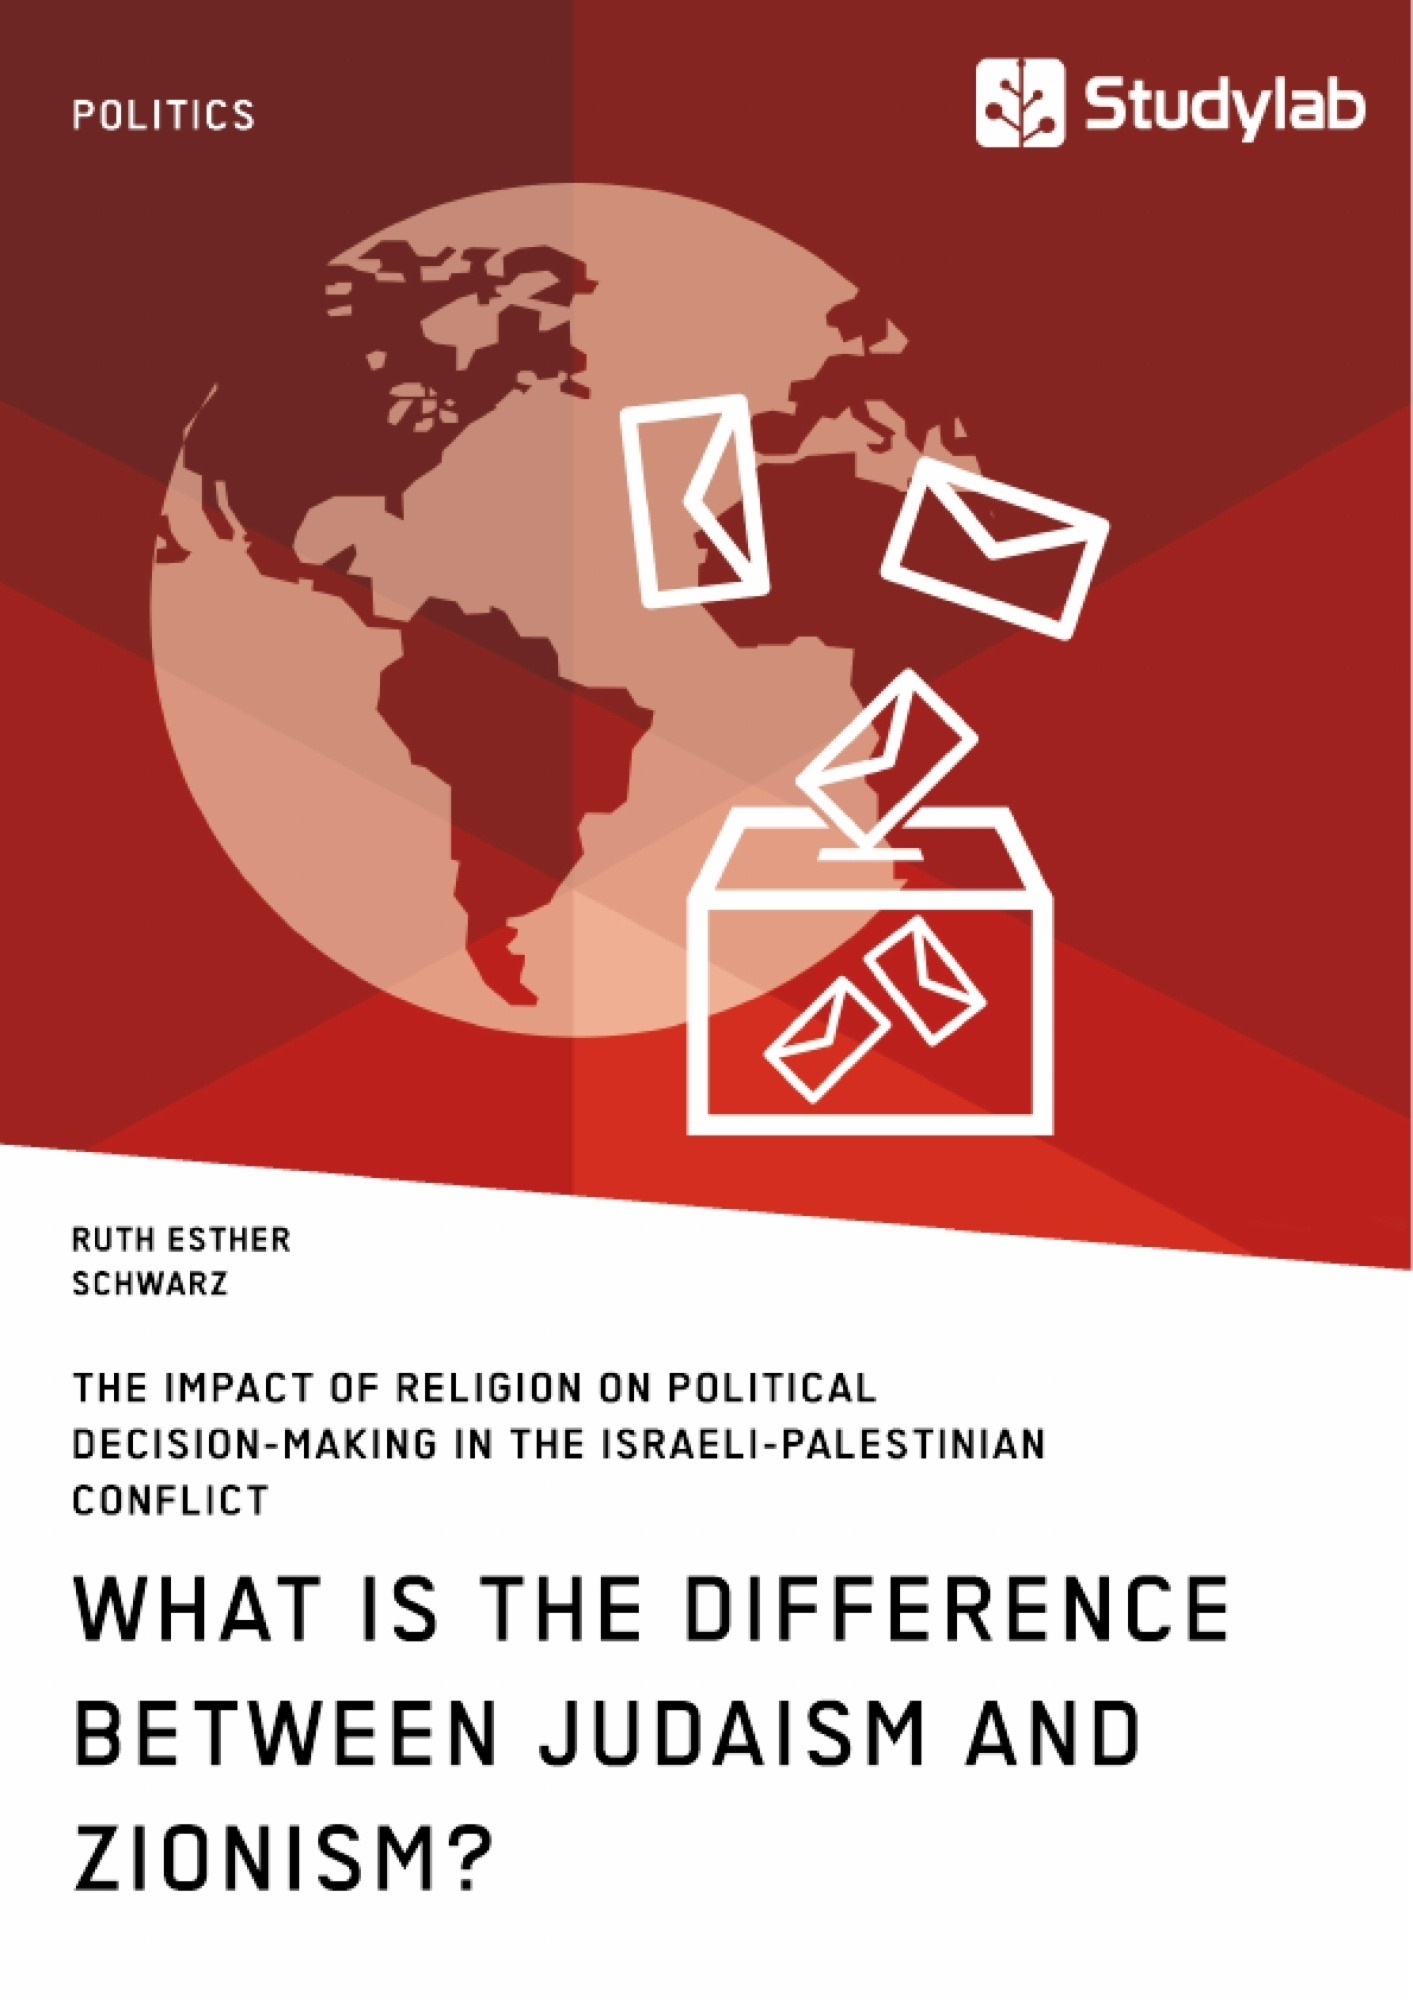 Title: What is the difference between Judaism and Zionism? The impact of religion on political decision-making in the Israeli-Palestinian conflict